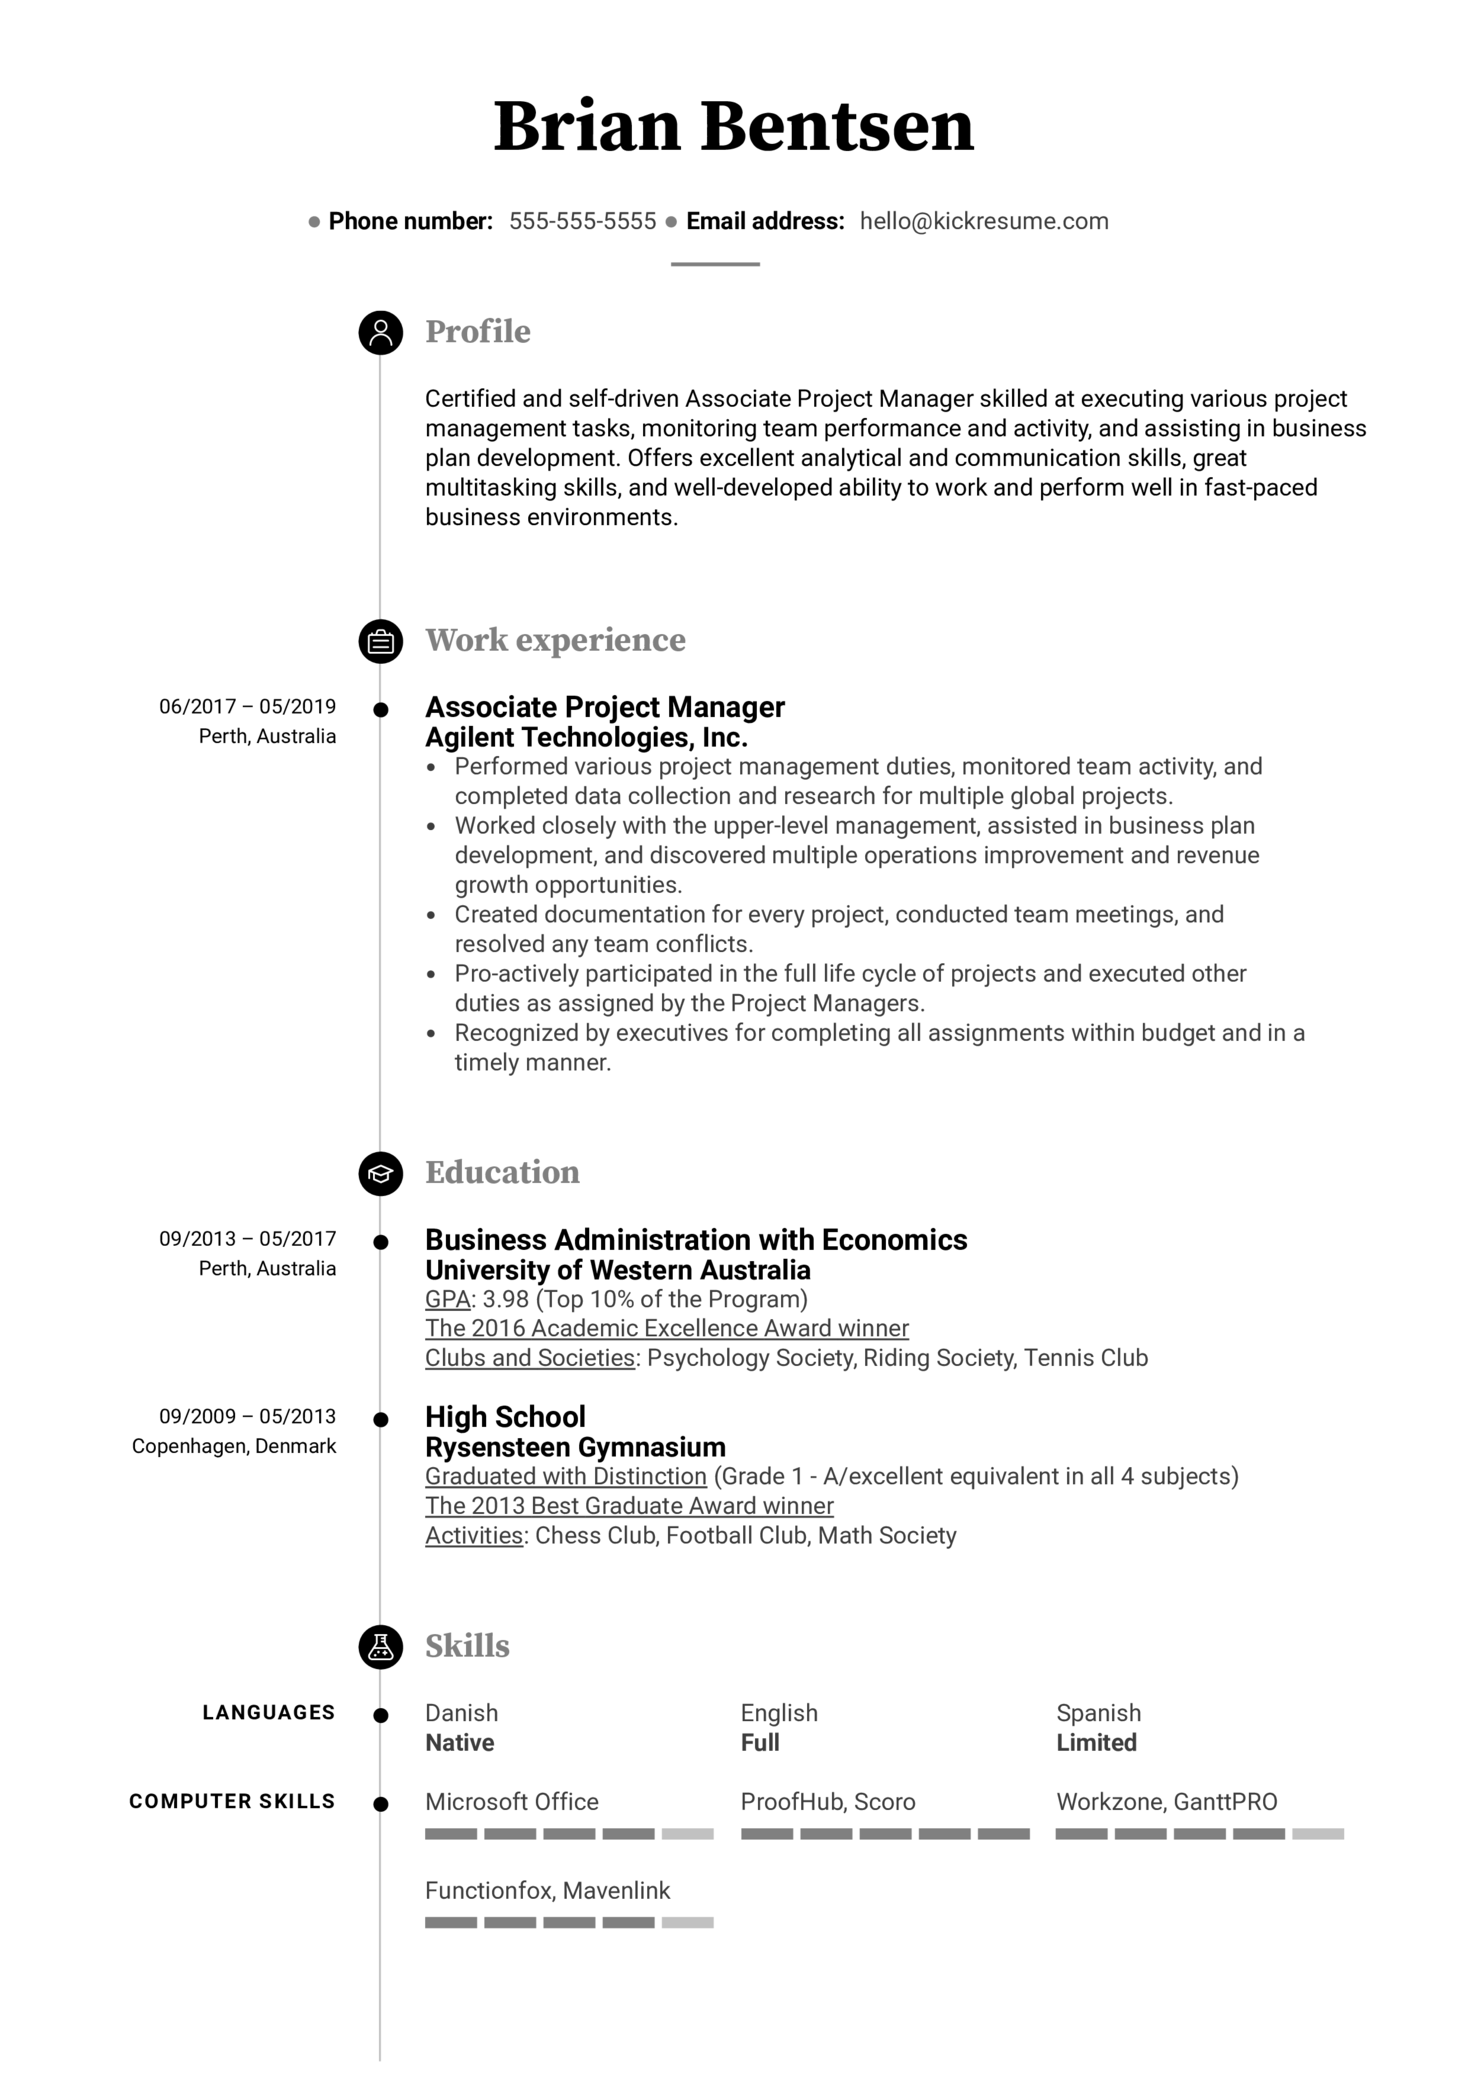 Associate Project Manager Resume Example (Part 1)